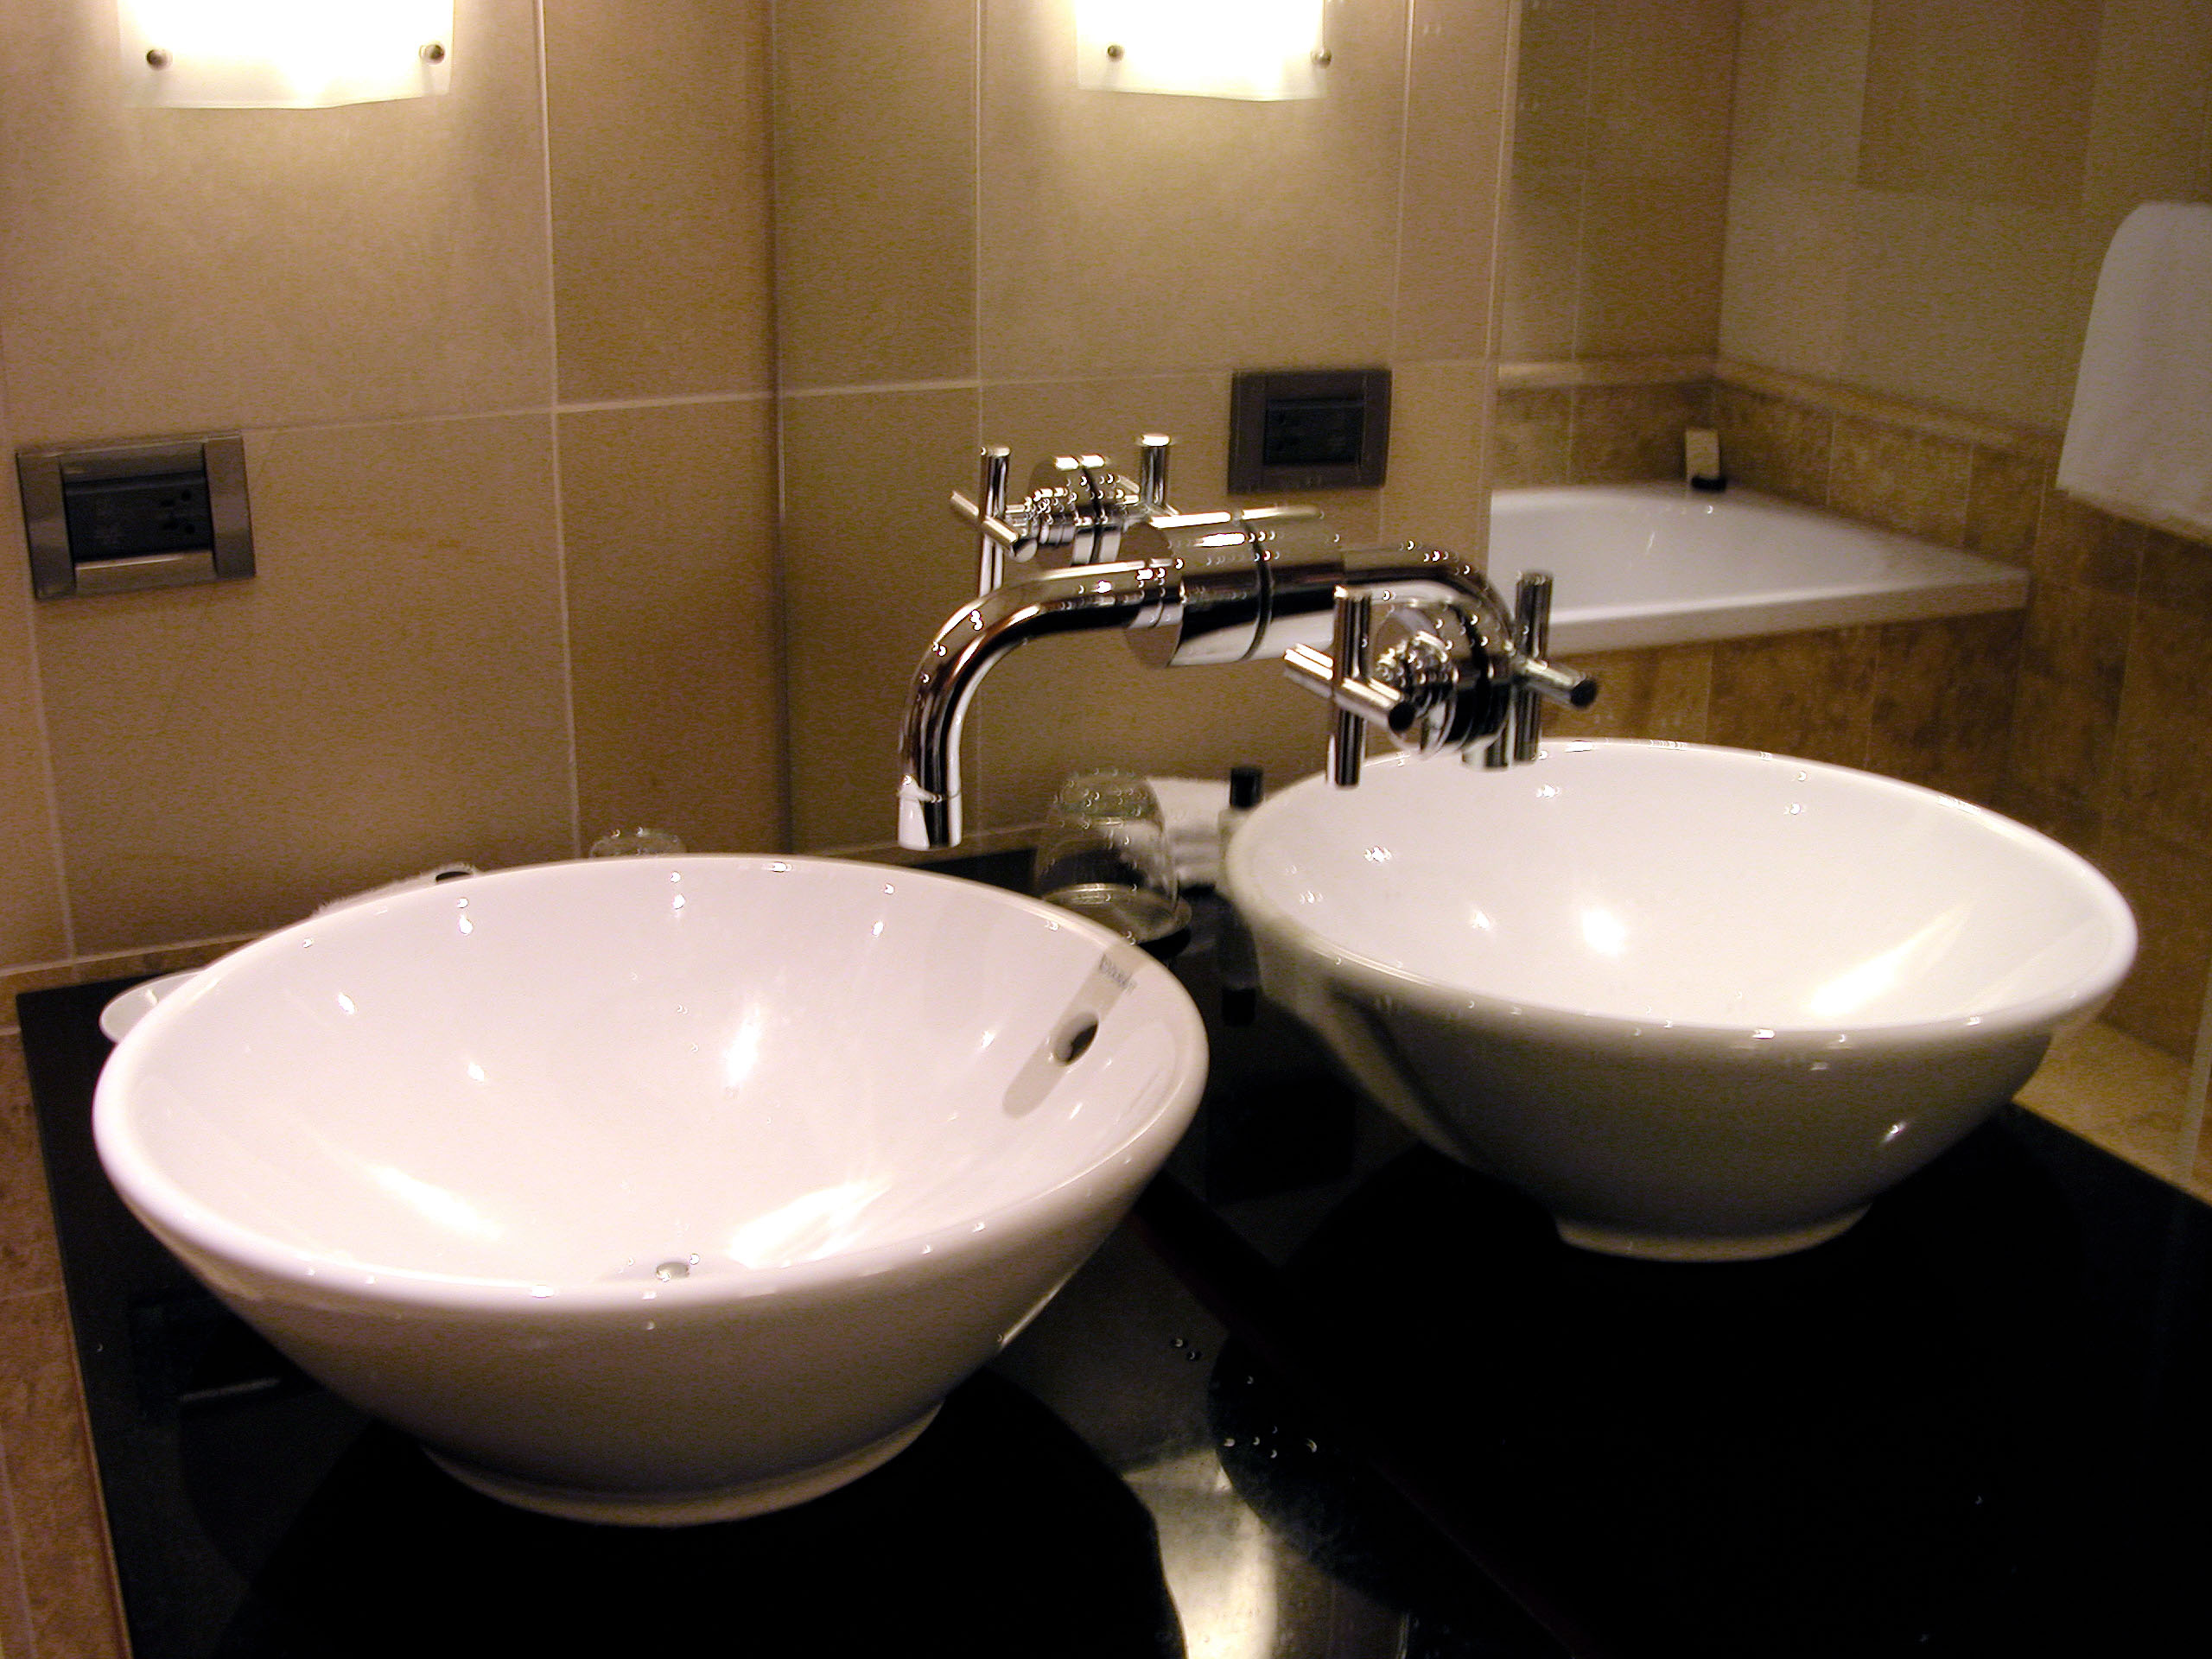 choosing a kitchen faucet what to look for looks durability rh plumbingportcharlottefl com what to look for in buying a kitchen faucet what to look for in a kitchen tap